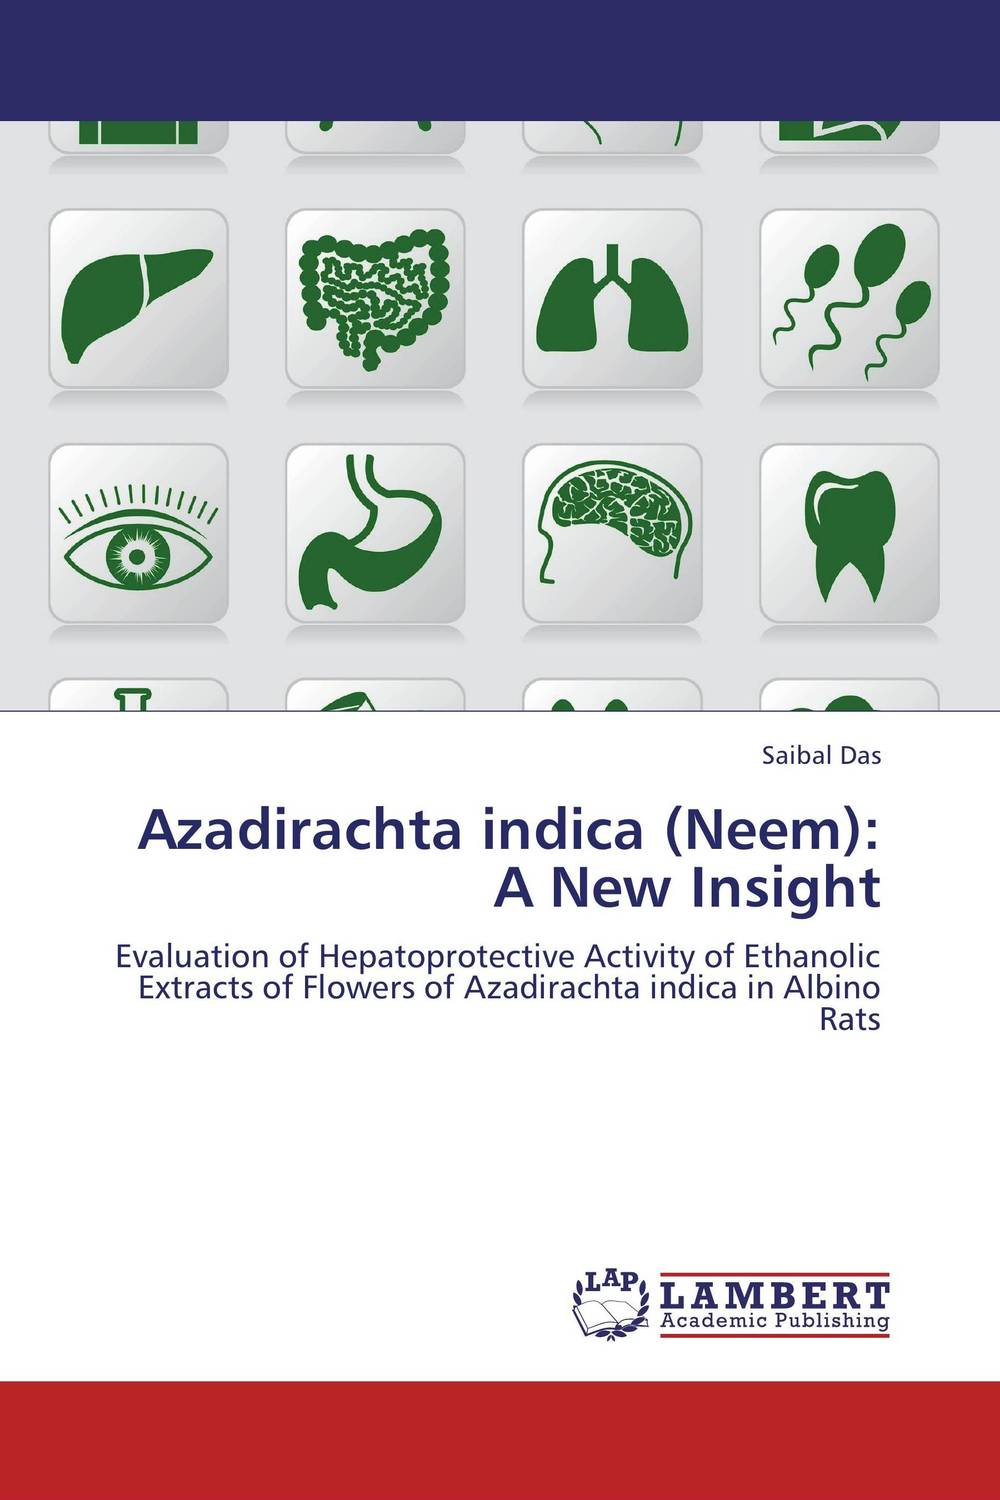 Azadirachta indica (Neem): A New Insight anil arjun hake sanjay jha and suman kumar jha molecular and biochemical characterization of karanja derris indica